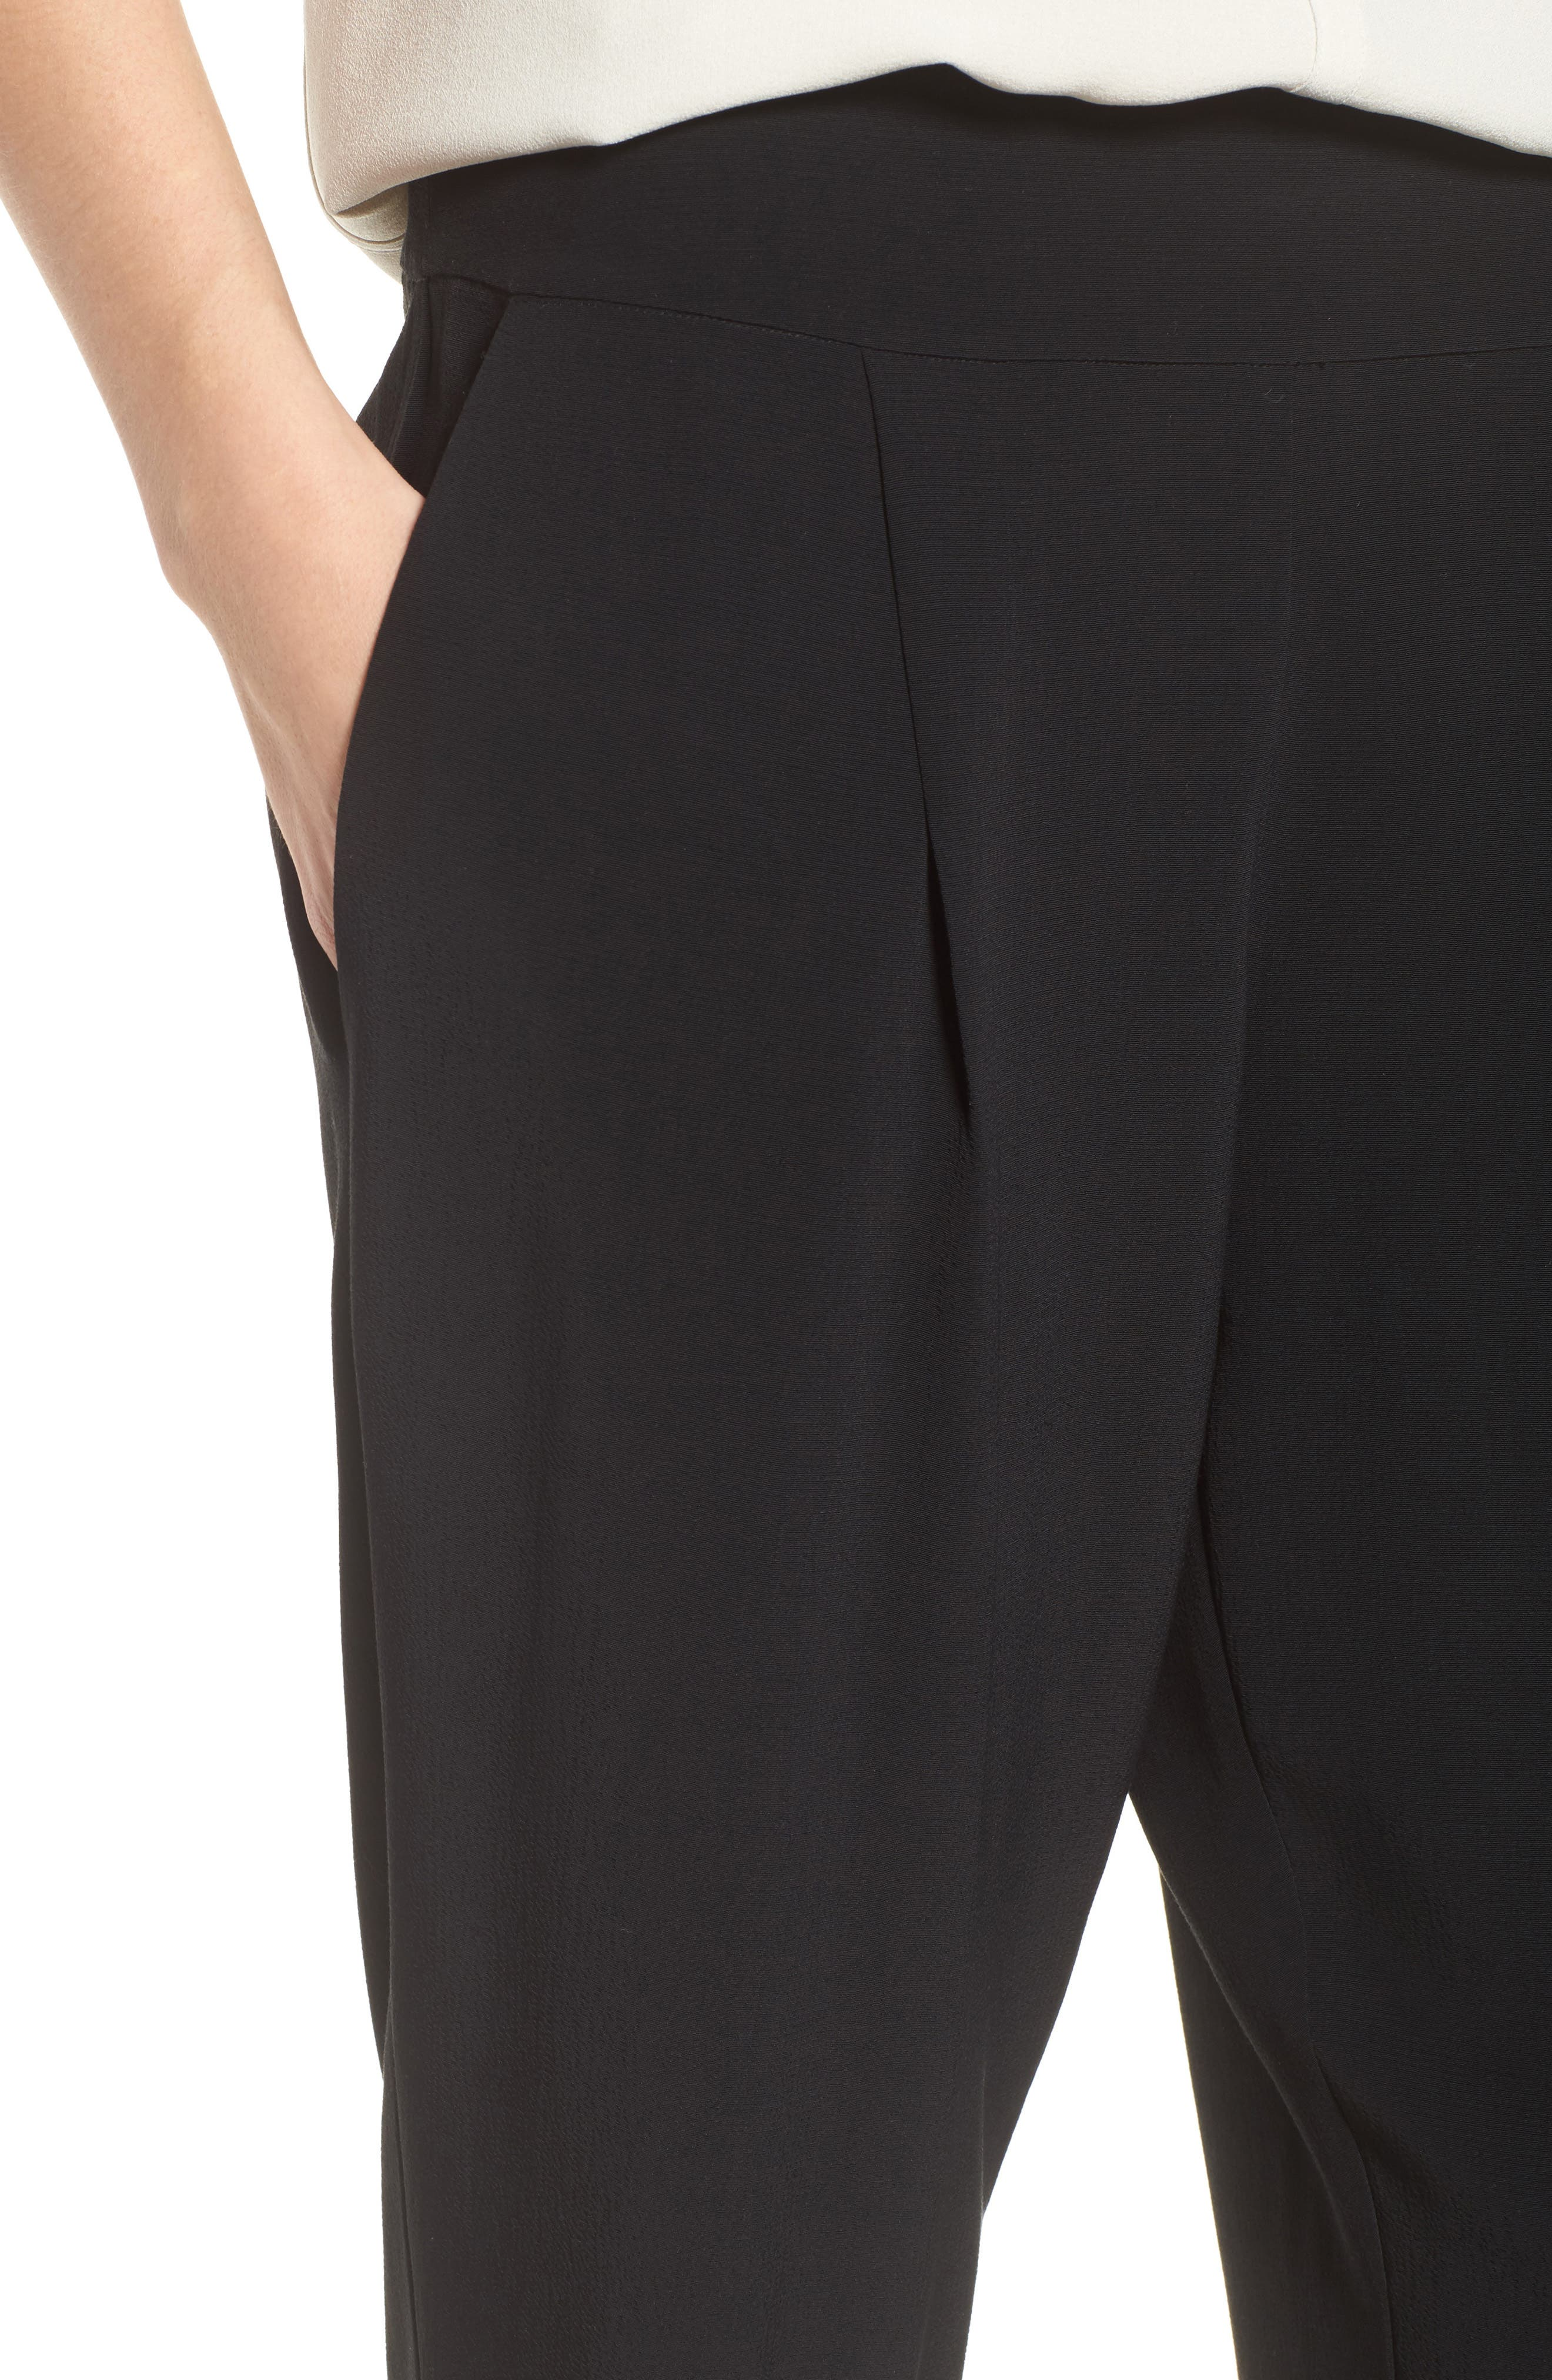 Slouchy Tencel<sup>®</sup> Lyocell Blend Crop Pants,                             Alternate thumbnail 4, color,